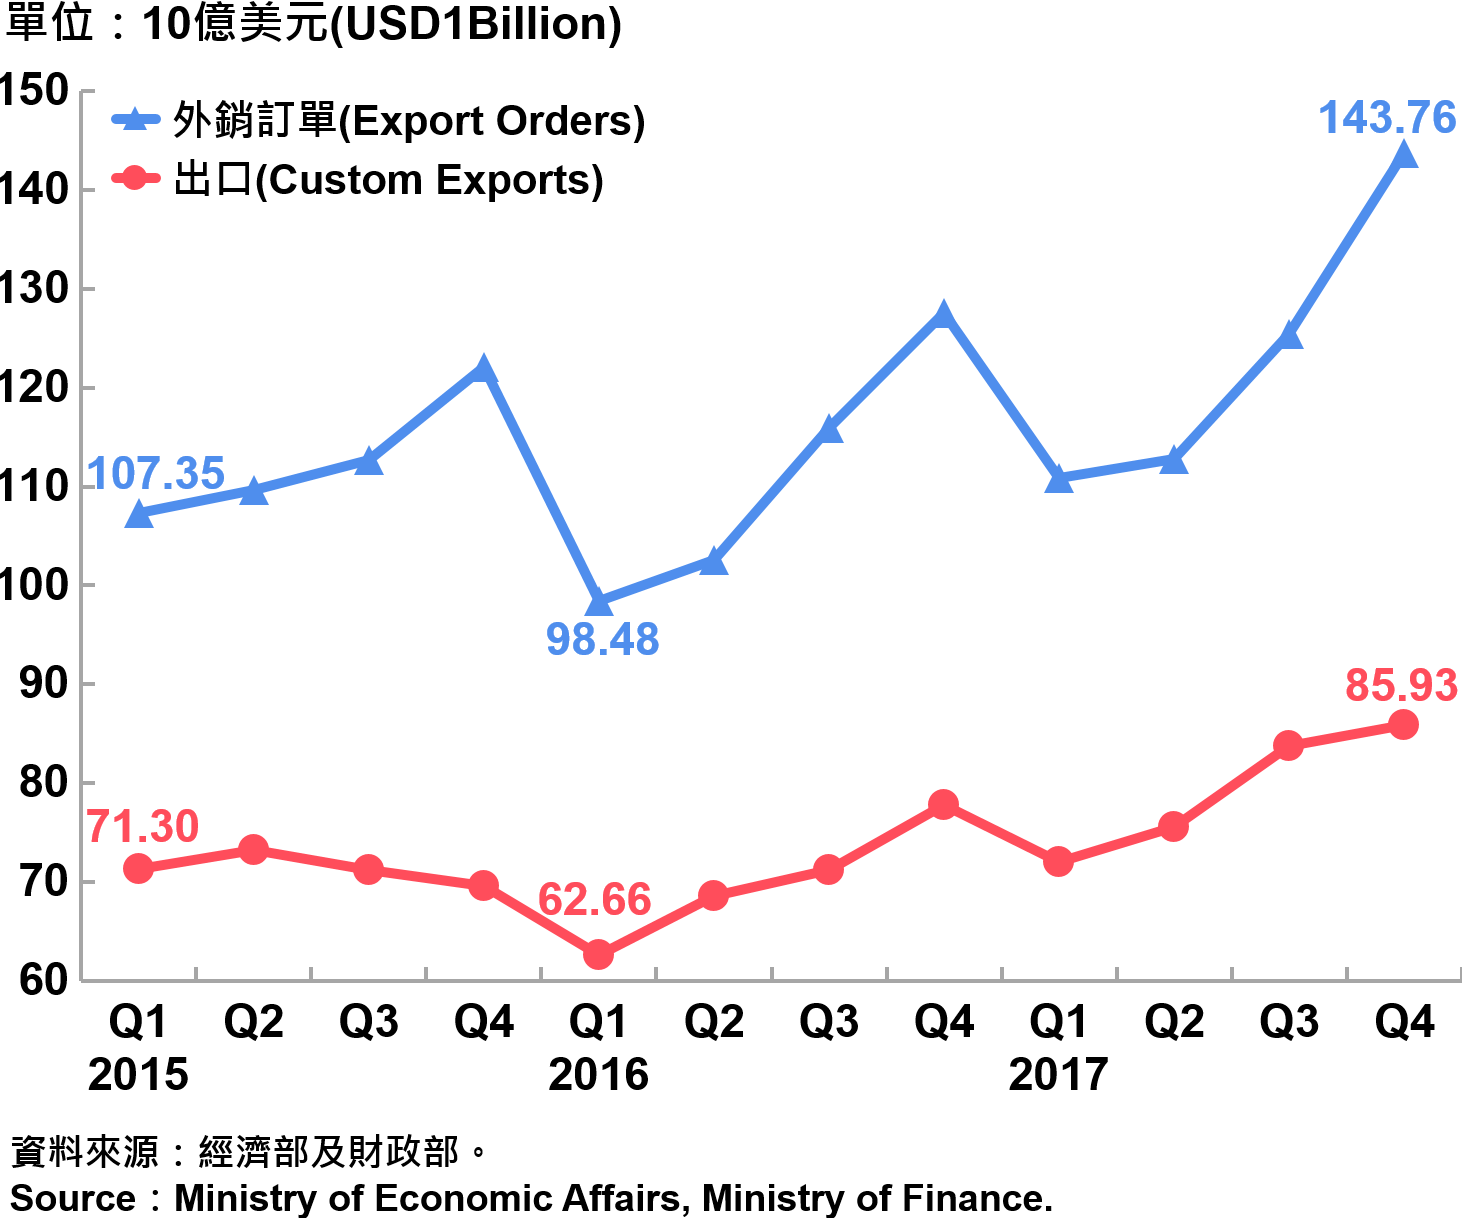 圖2 臺灣海關出口與外銷訂單 Custom Export and Export Orders in Taiwan